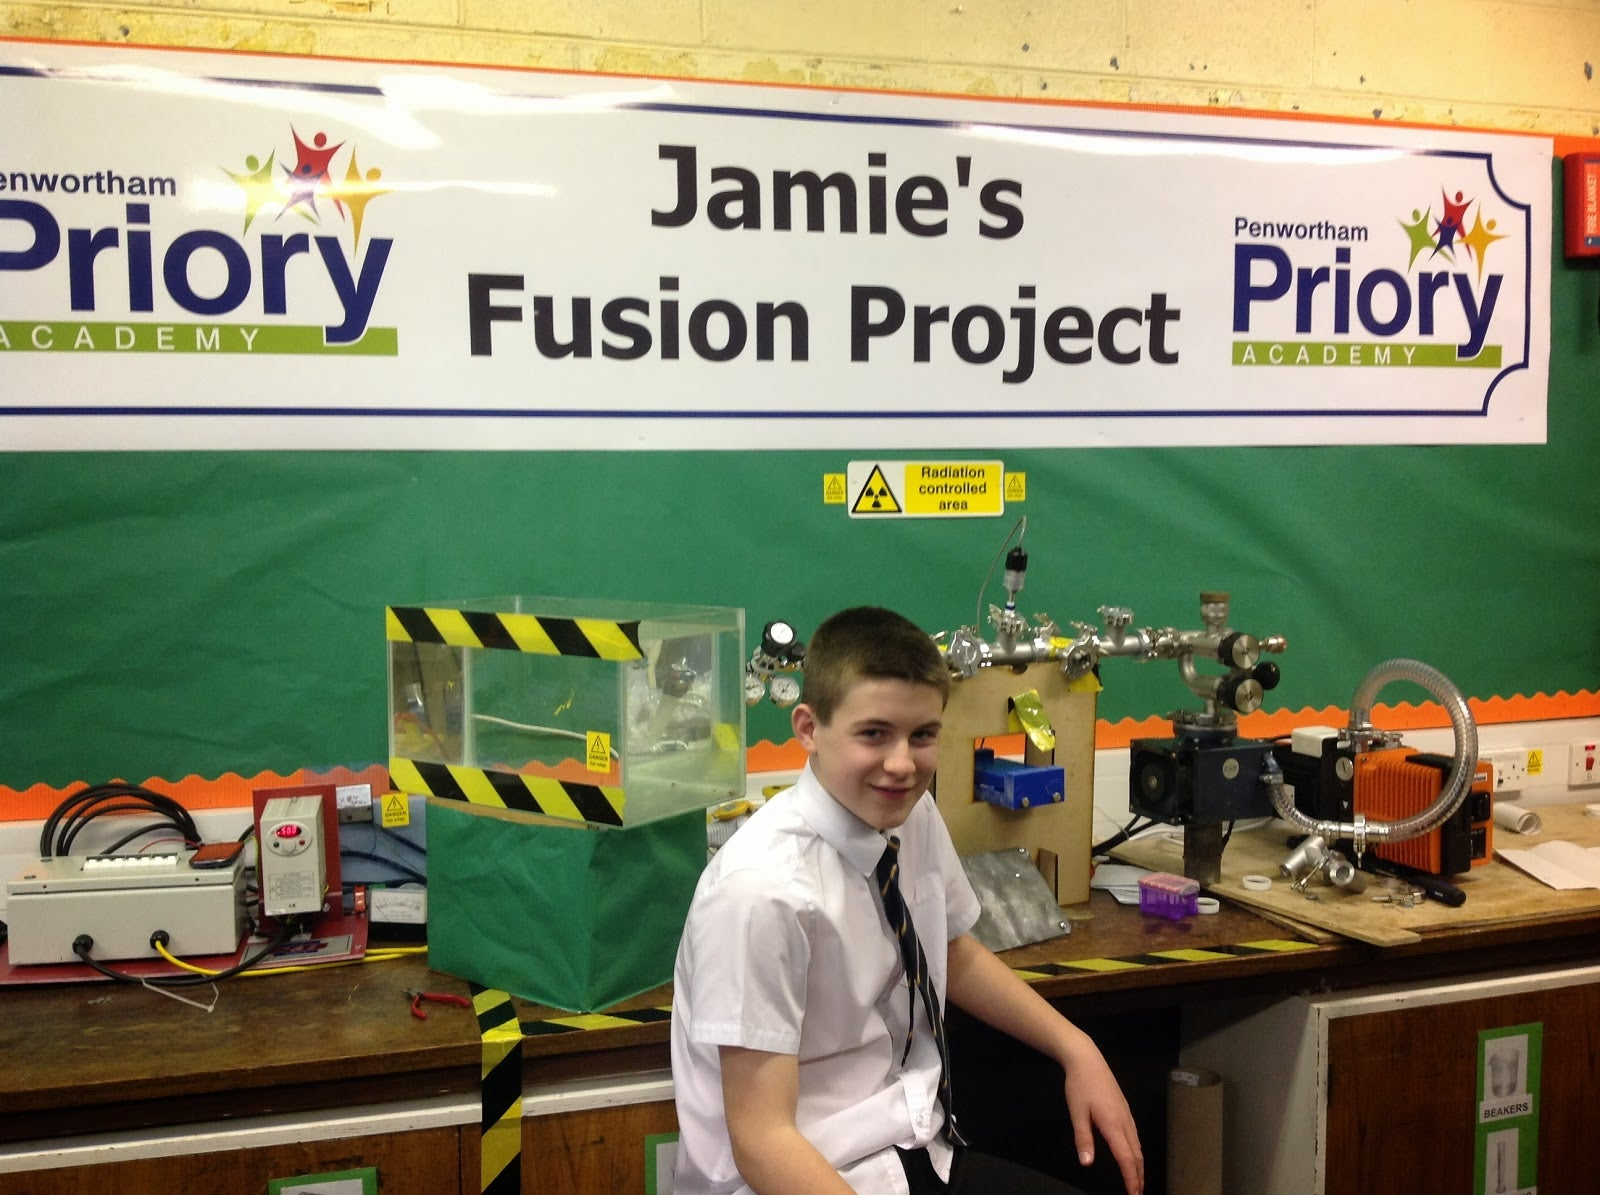 13-Year-Old Builds Nuclear Reactor, Becomes Youngest Fusioneer Ever